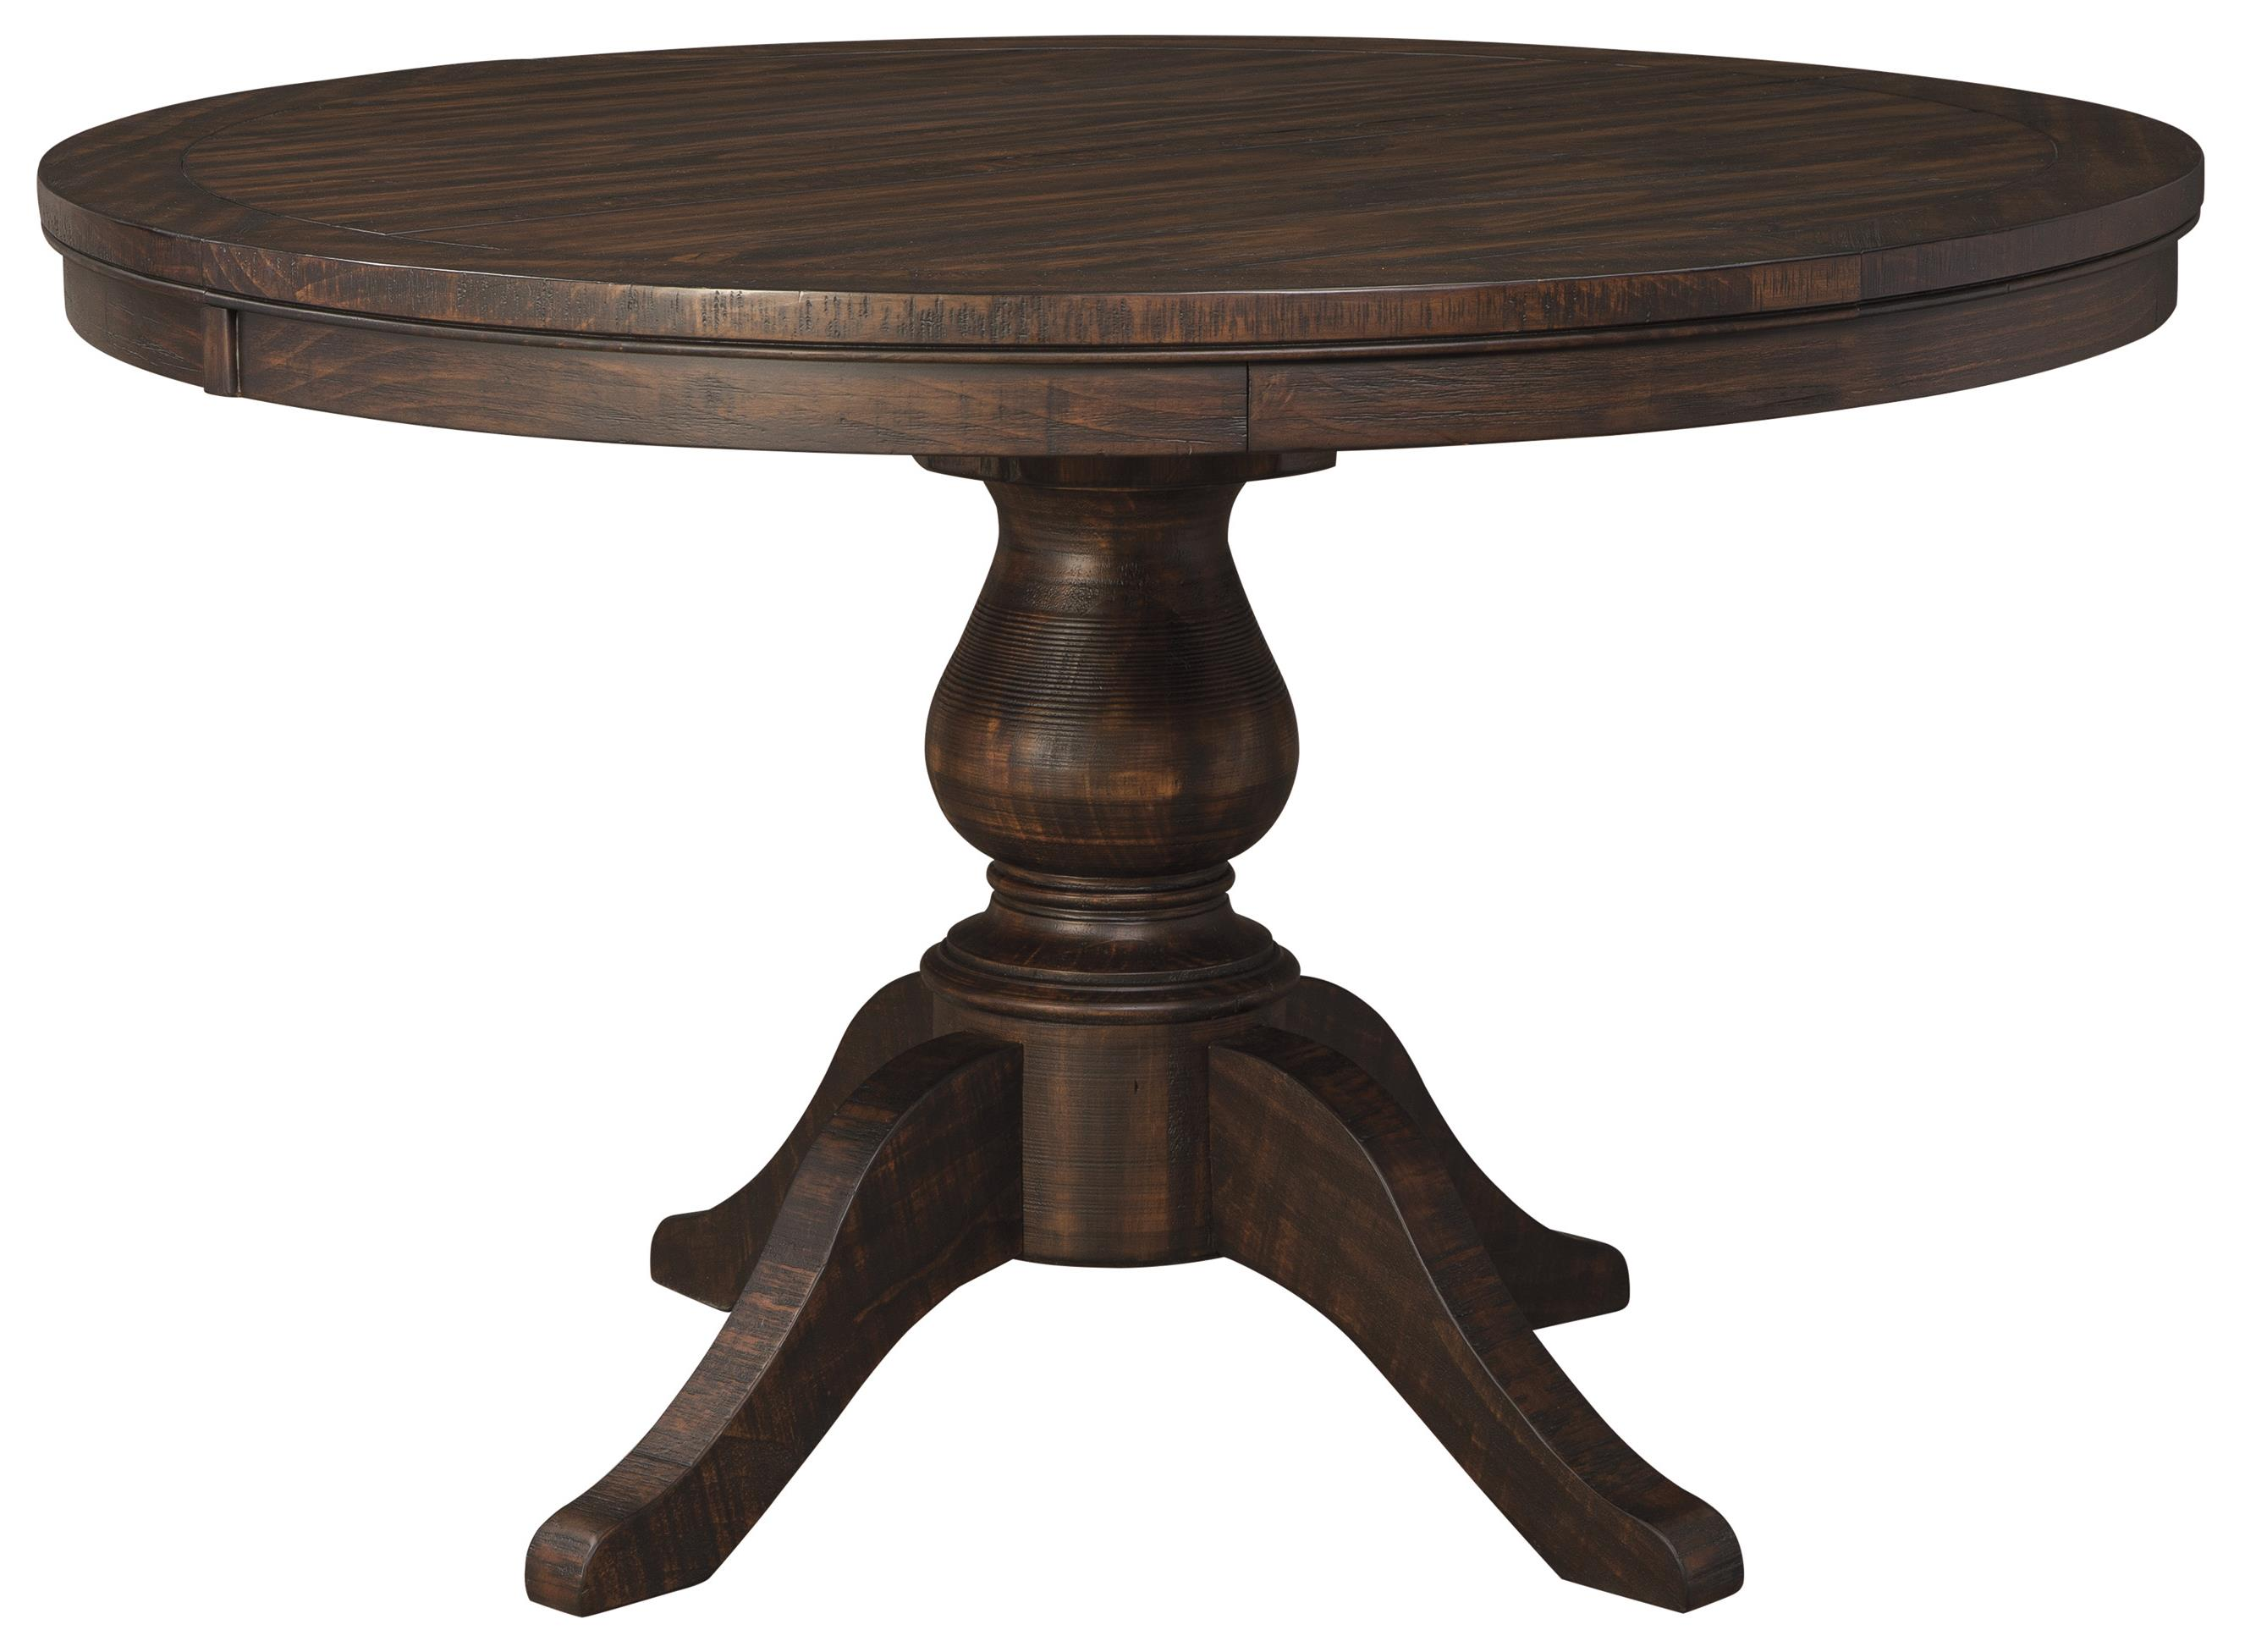 Solid wood pine round dining room pedestal extension table for Solid wood round dining table with leaf